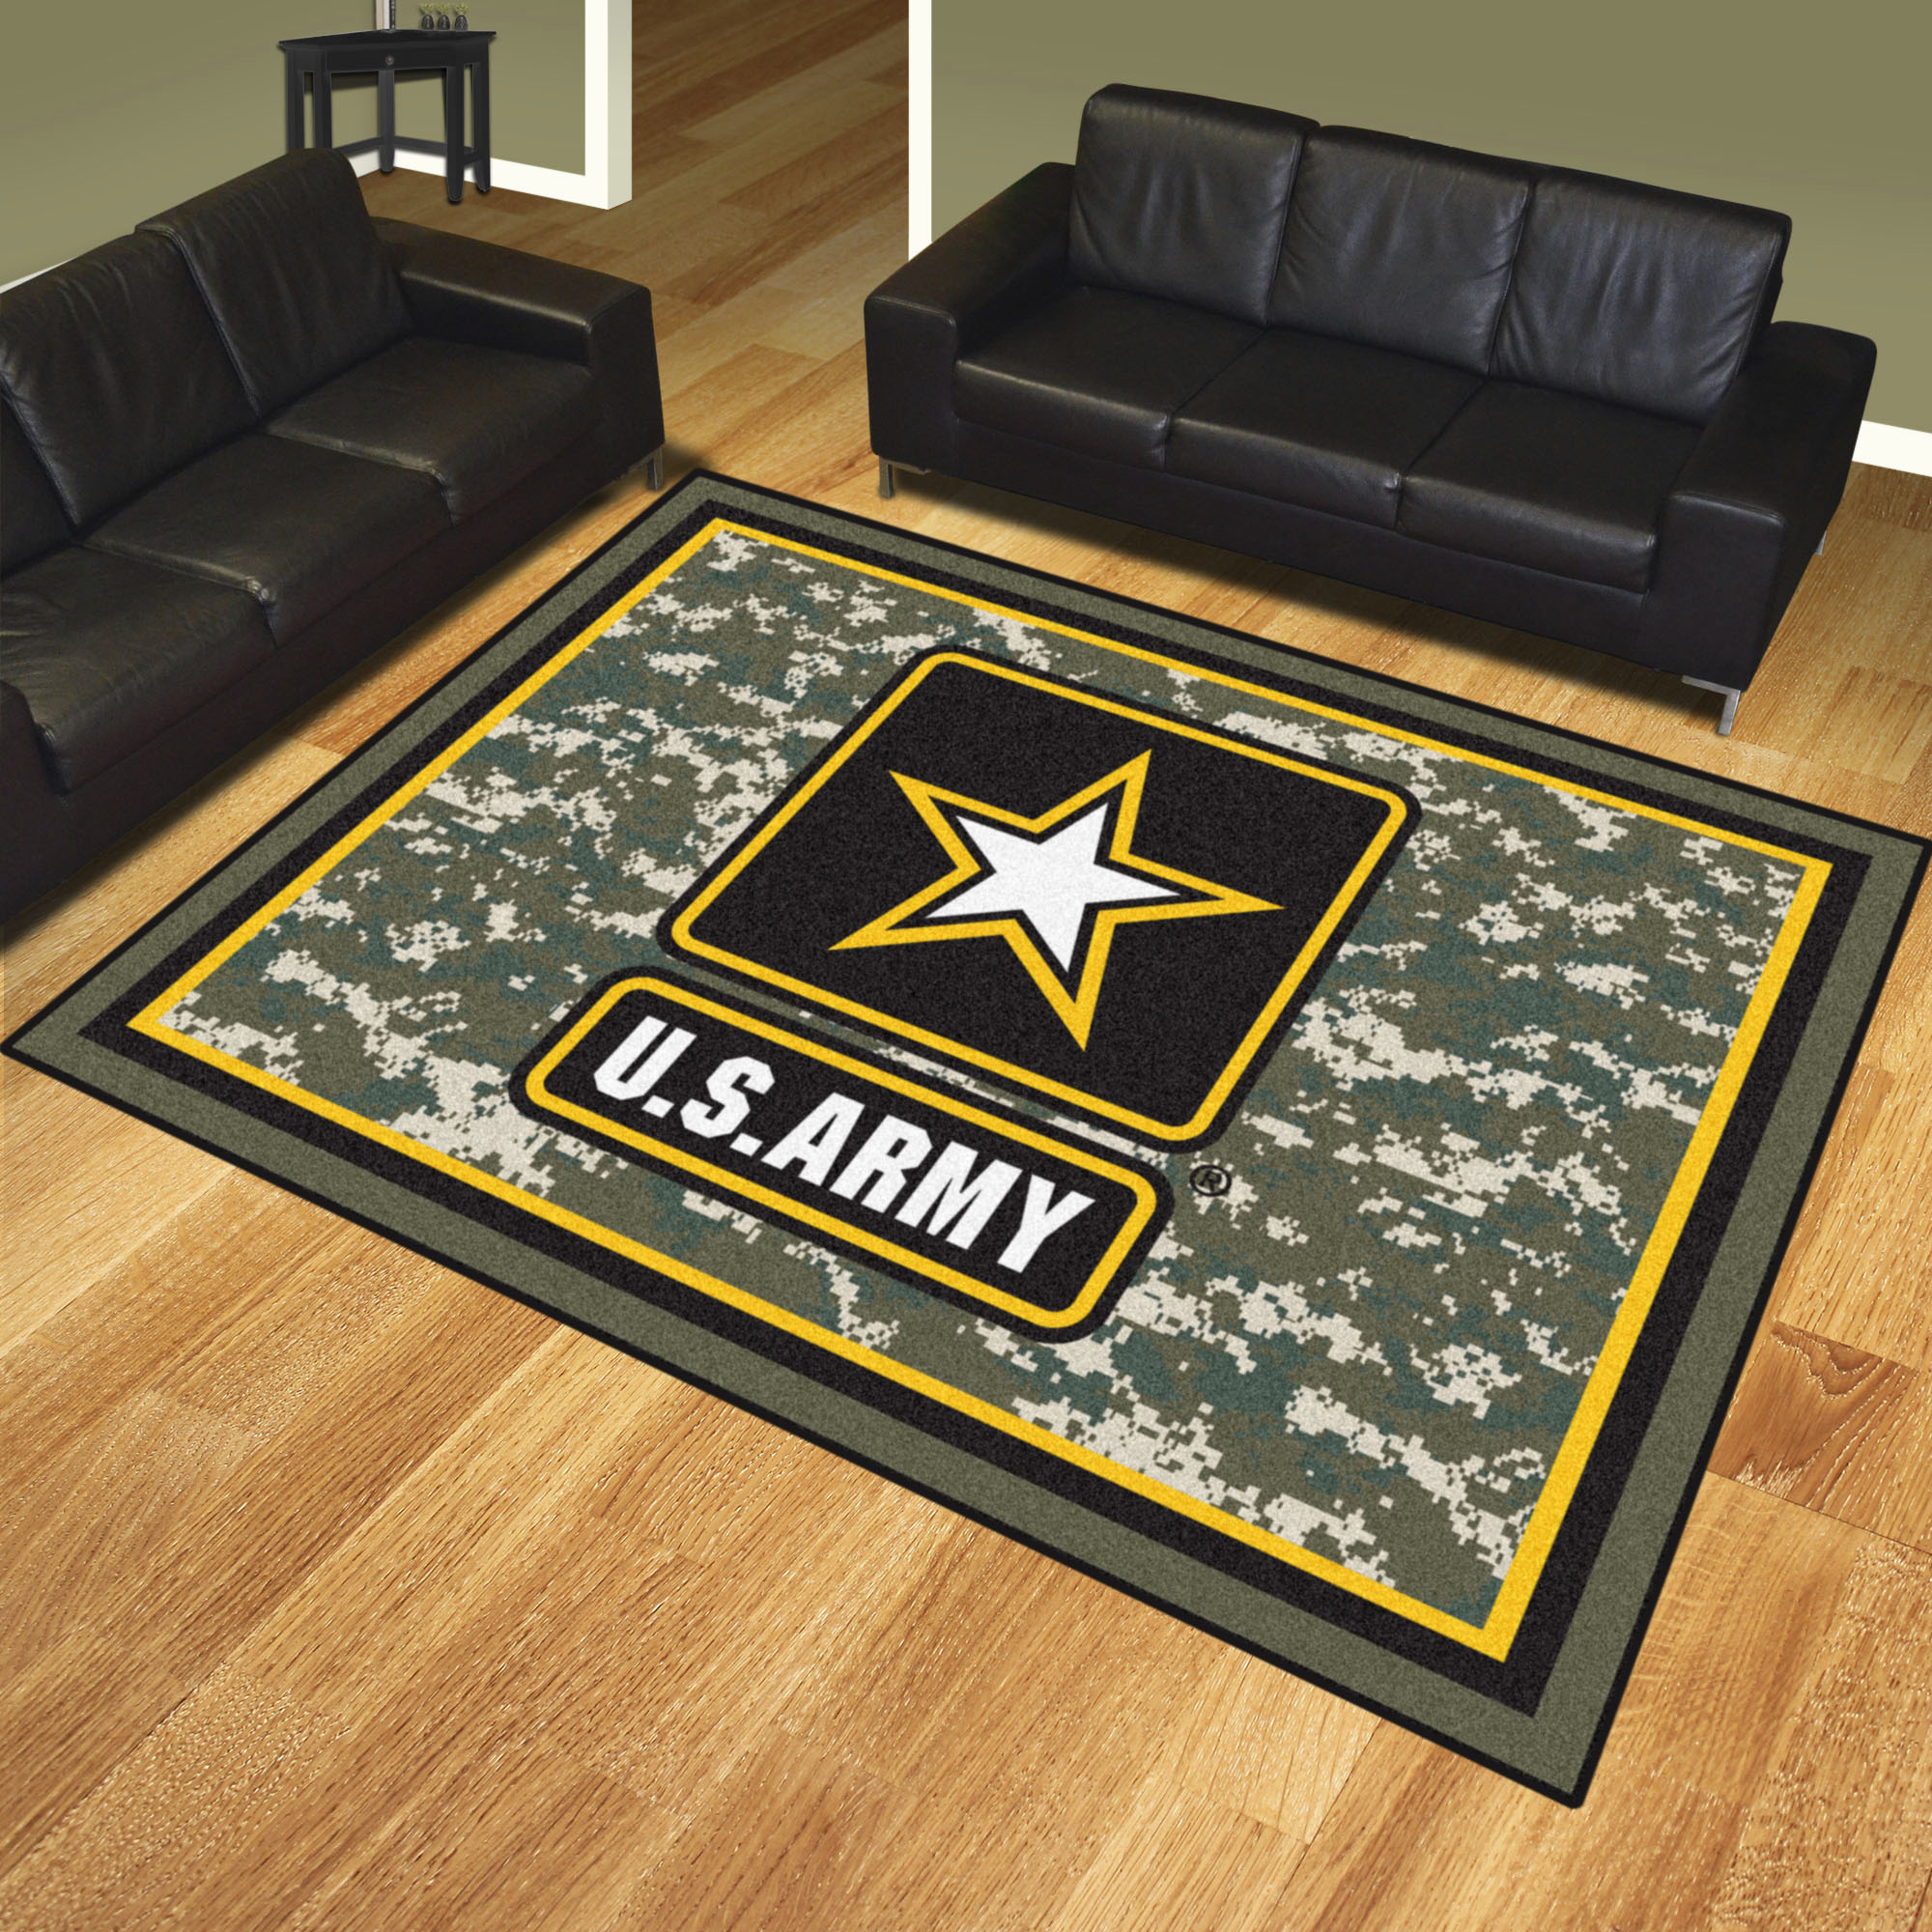 Us Army Area Rug Nylon 8 X 10